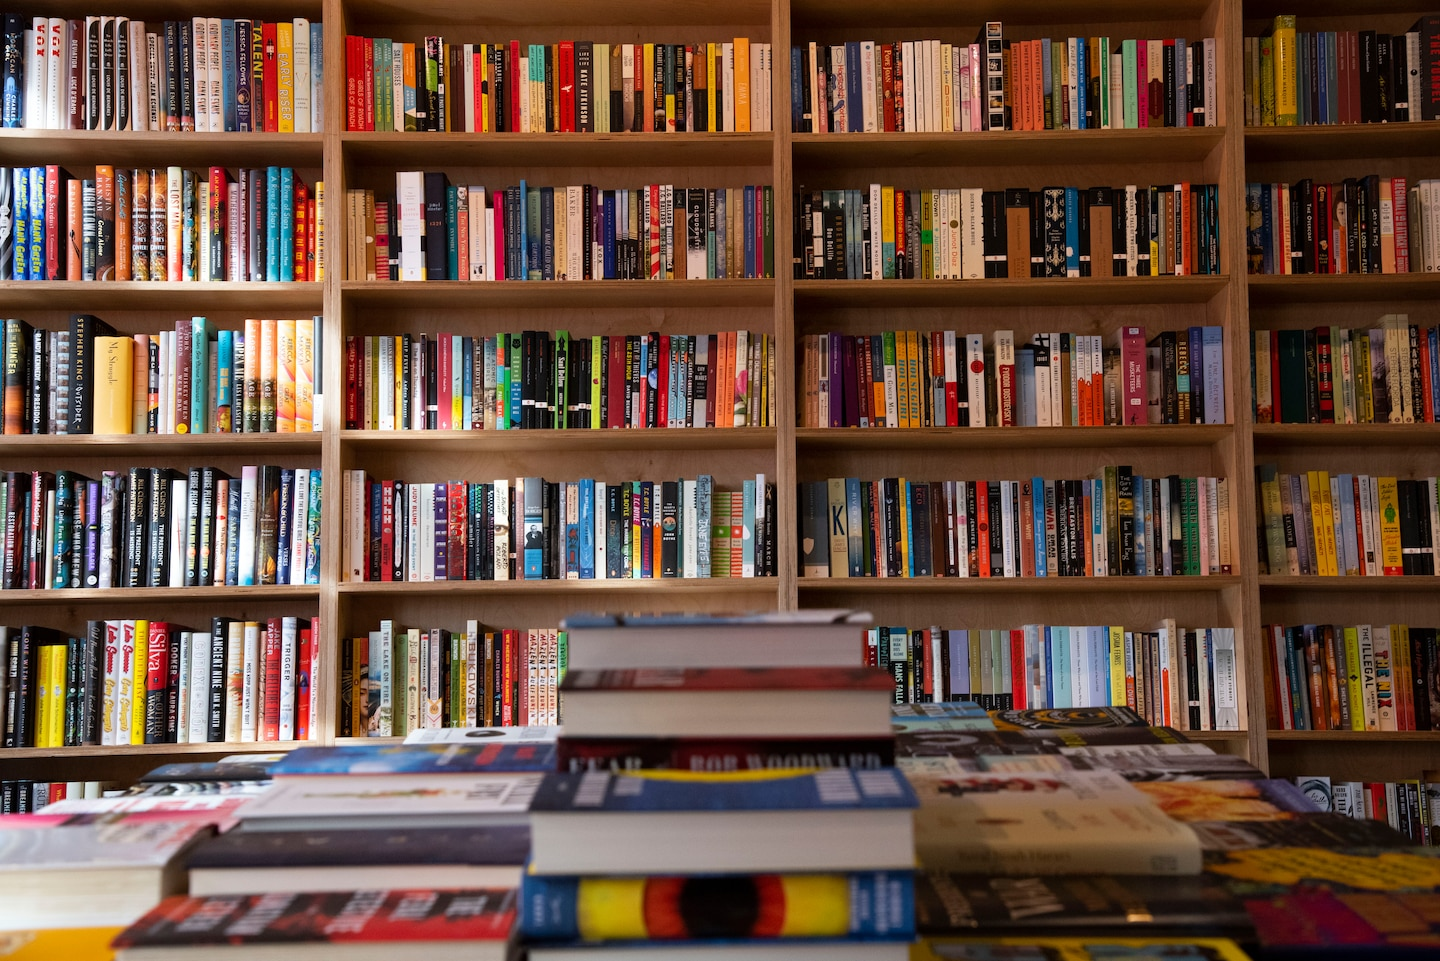 Bookstore browsing is a thrill no algorithm can match